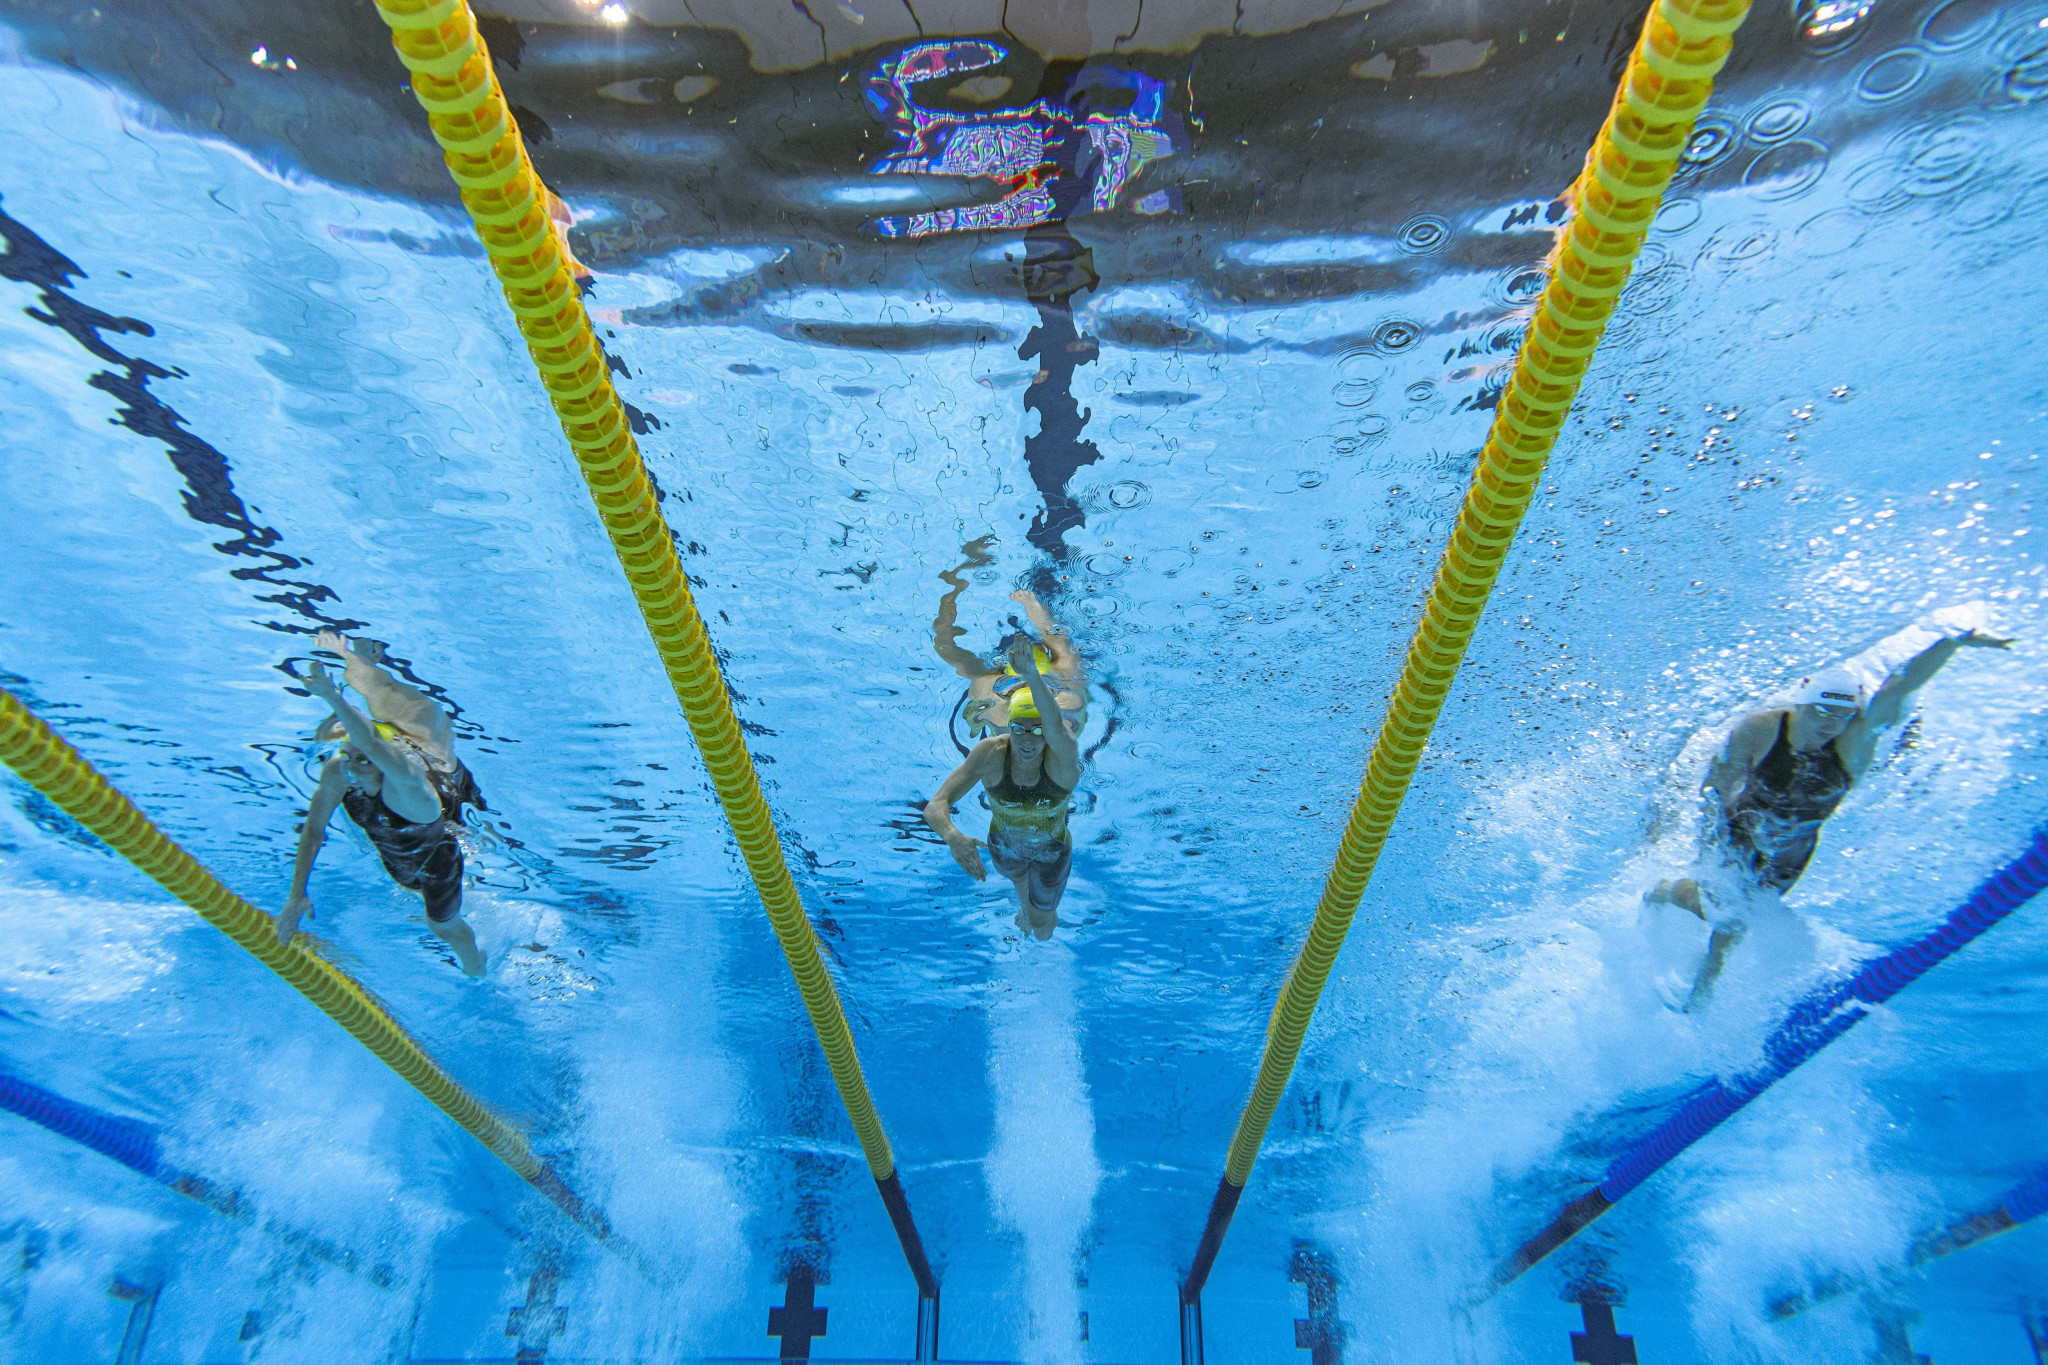 Swimming Australia faces criticism over its handling of abuse allegations against former coach John Wright